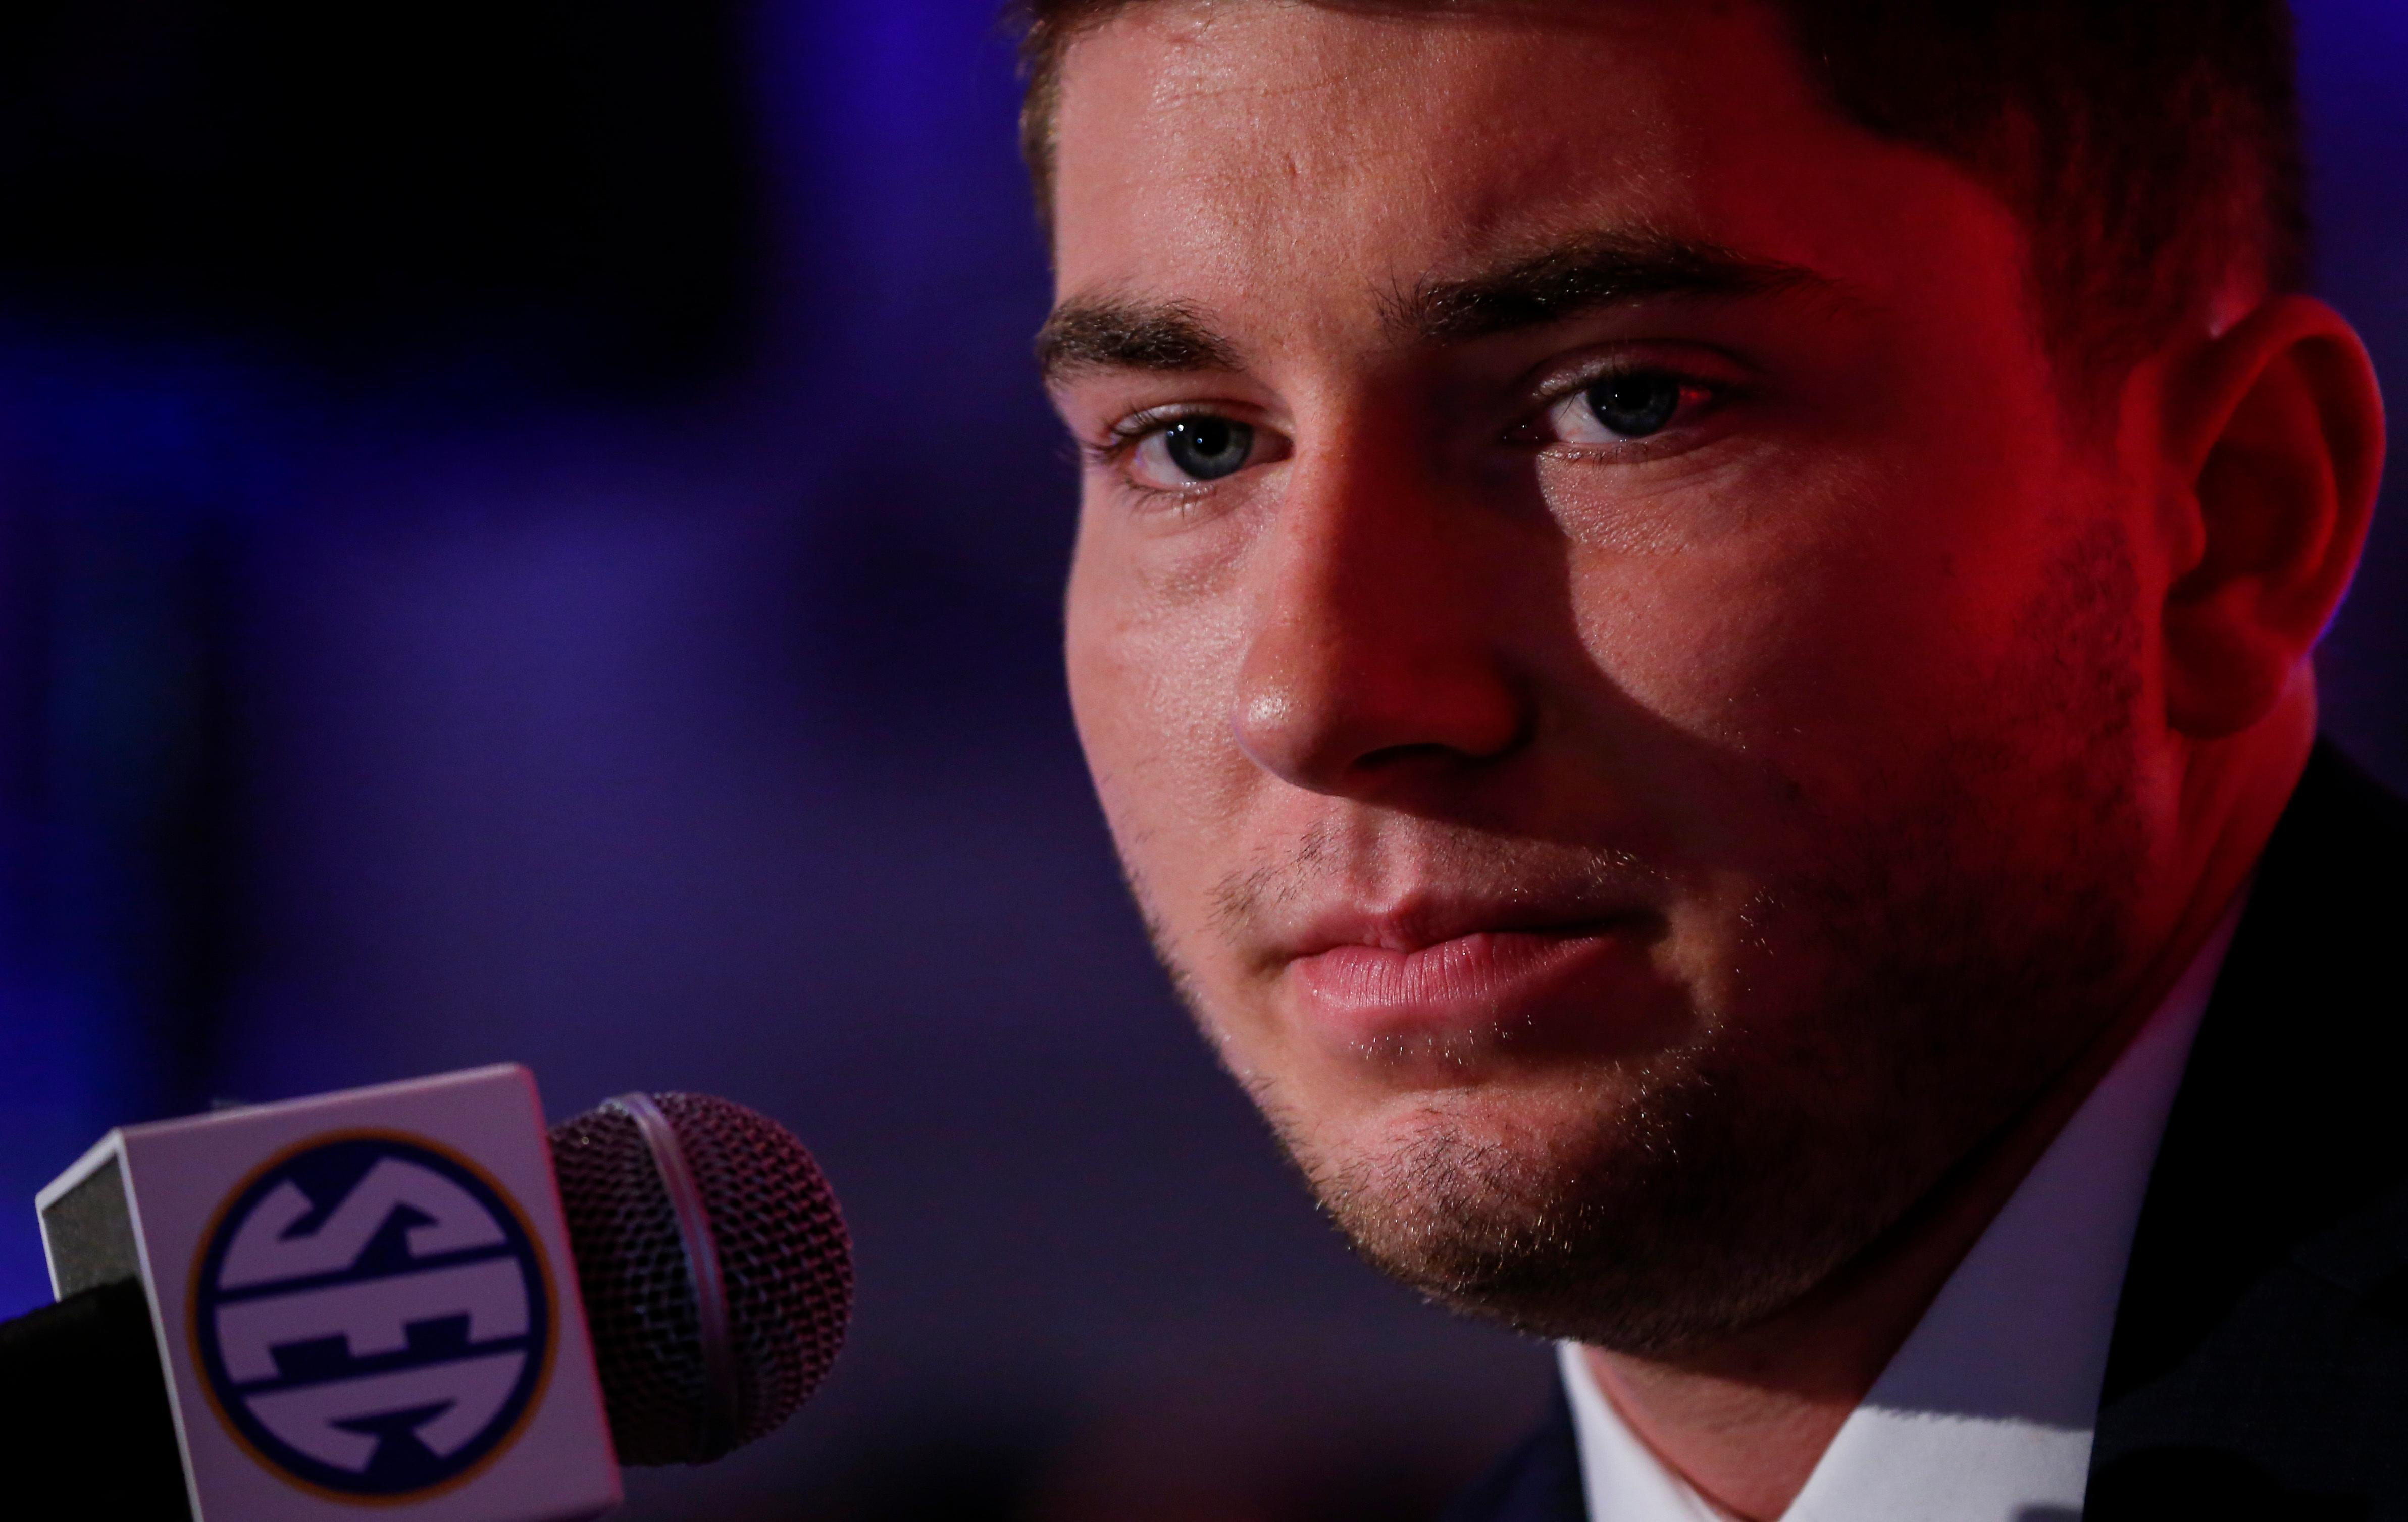 Mississippi NCAA college football player Shea Patterson speaks during the Southeastern Conference's annual media gathering, Thursday, July 13, 2017, in Hoover, Ala. (AP Photo/Butch Dill)